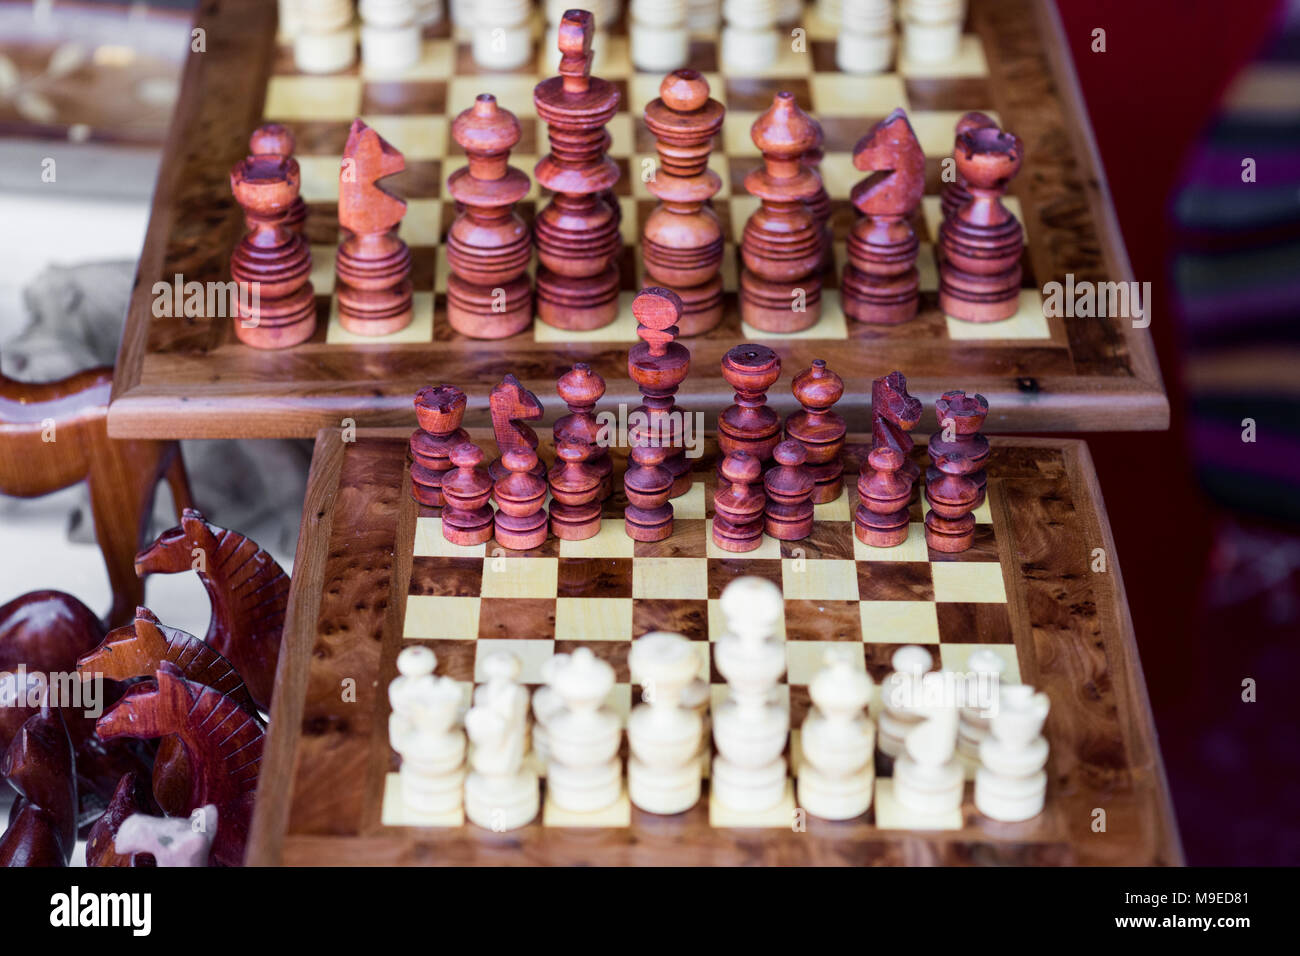 Wooden chessboard game with arranged wooden chess figures ready for playing - Stock Image